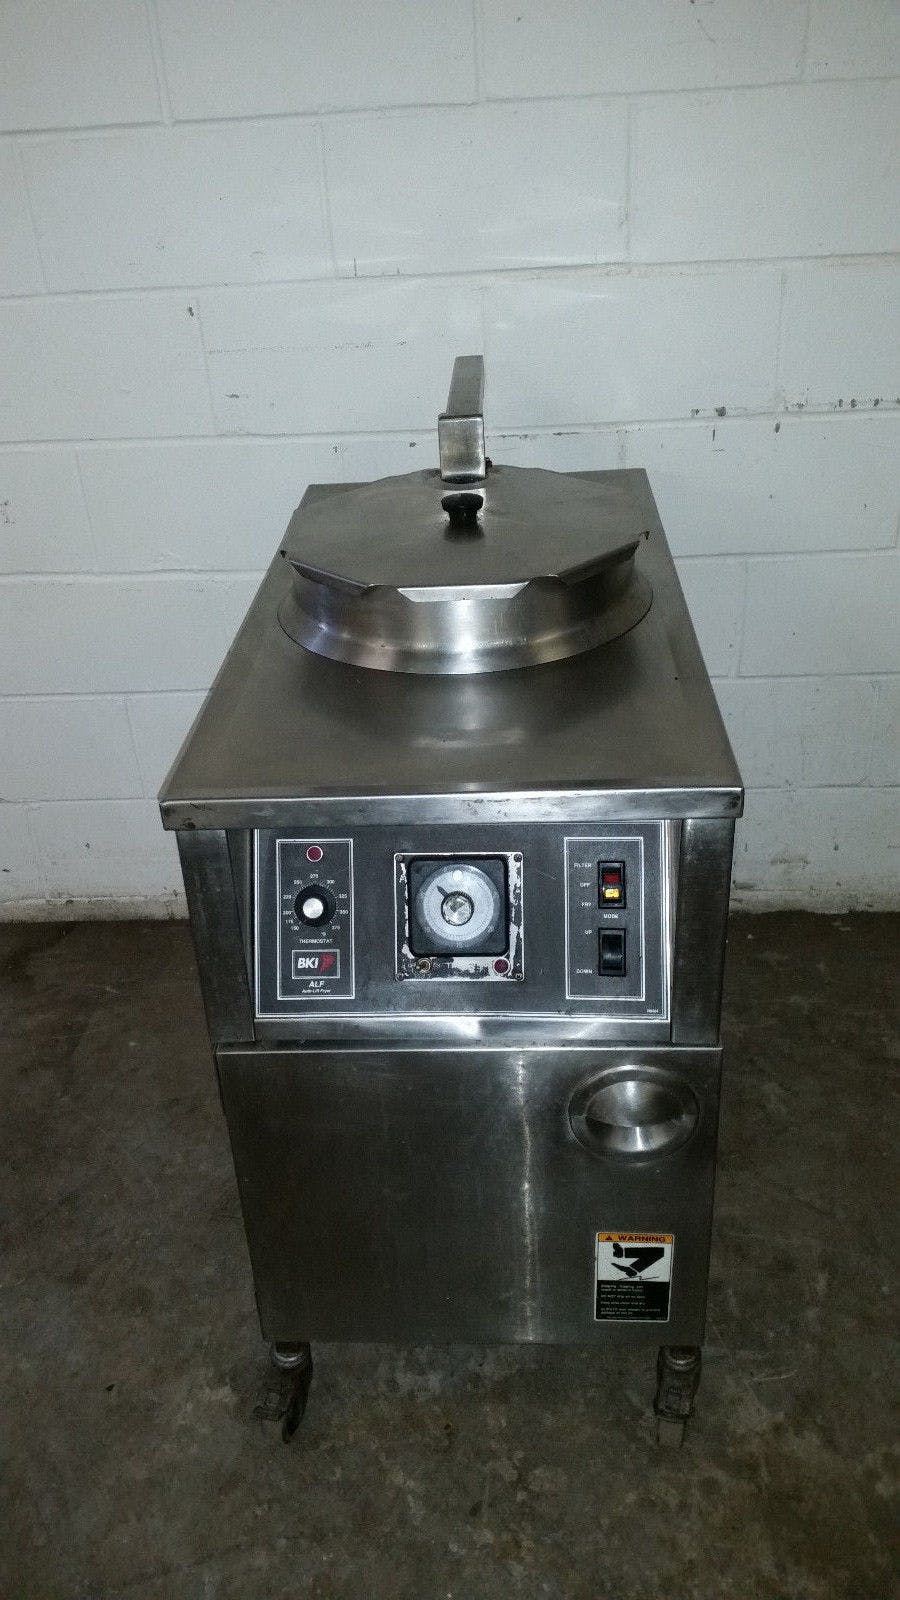 BKI ALF-F48 Electric Auto Lift Chicken Fryer Filtration Deep Fat Tested 208 Volt - sold by Jak's Restaurant Supply